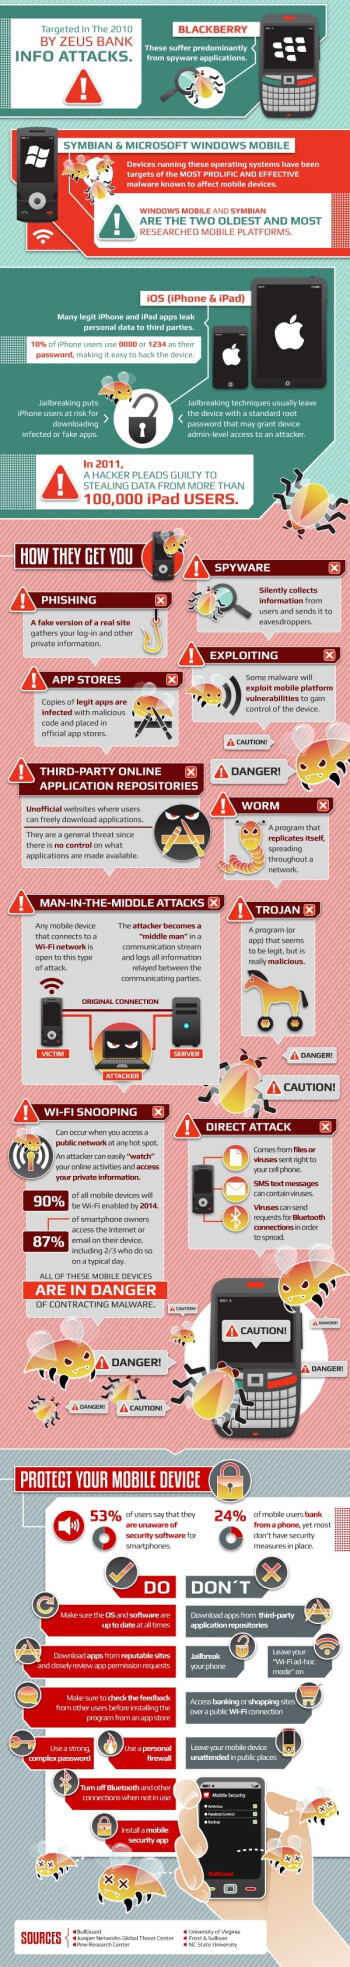 Detailed infographic speaks of the current state of mobile malware